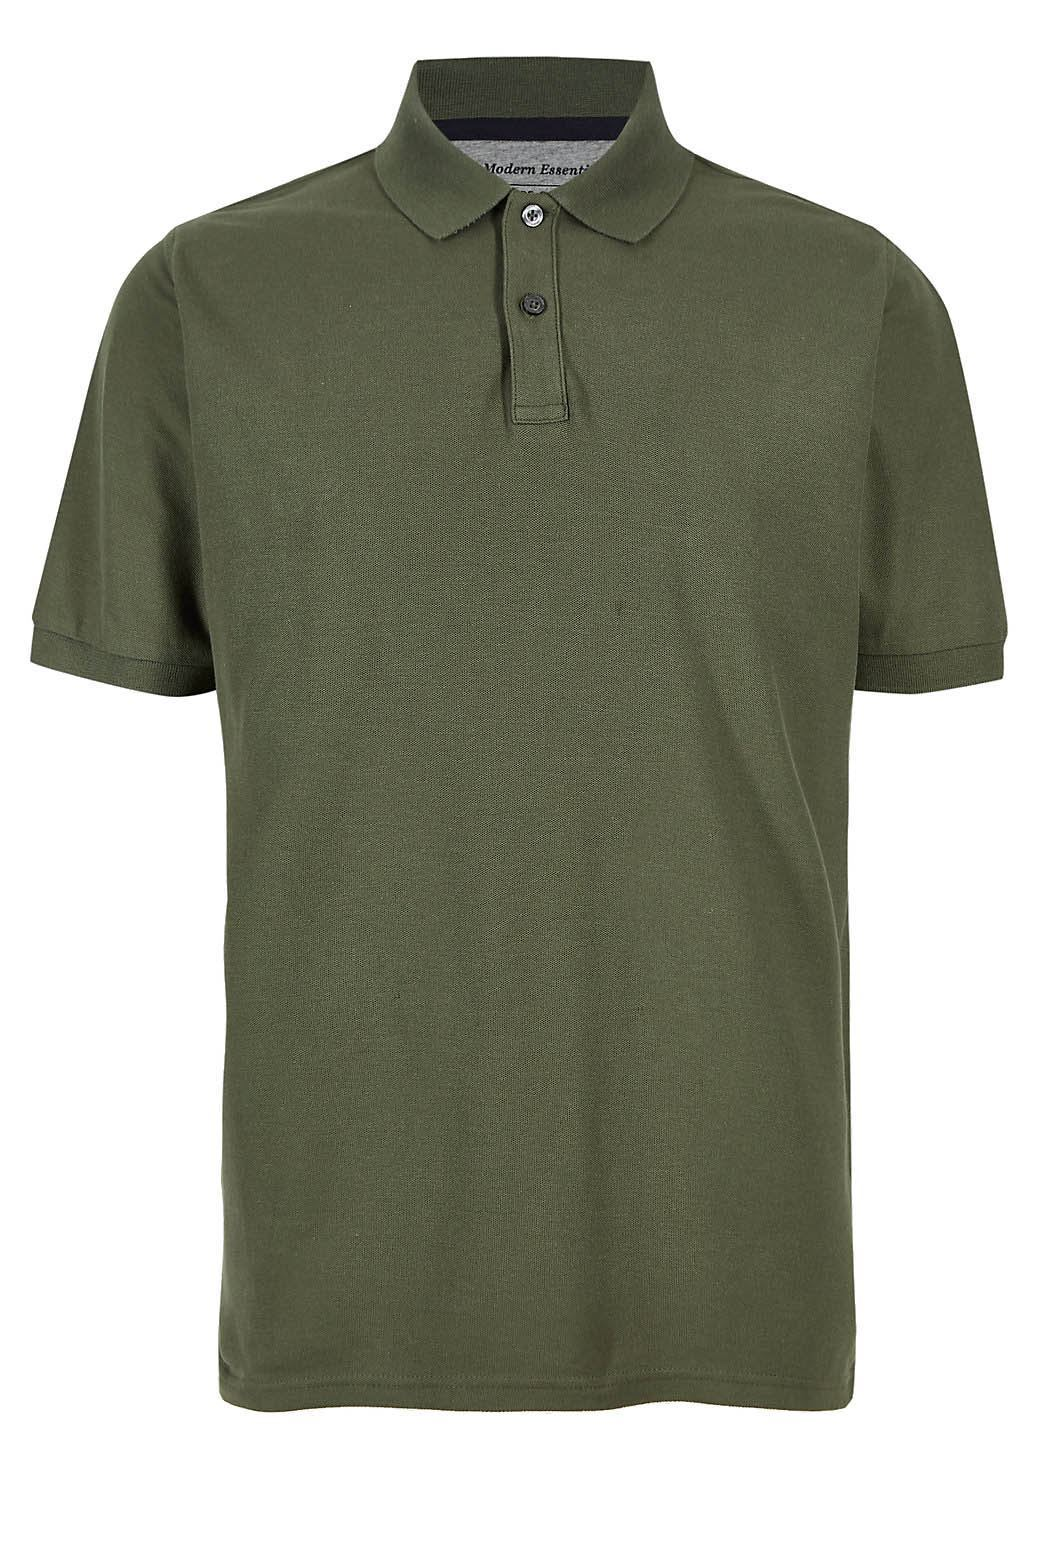 MARKS-amp-SPENCER-Mens-Classic-Cotton-Polo-Shirt-M-amp-S-All-Colours-and-Large-Sizes thumbnail 15